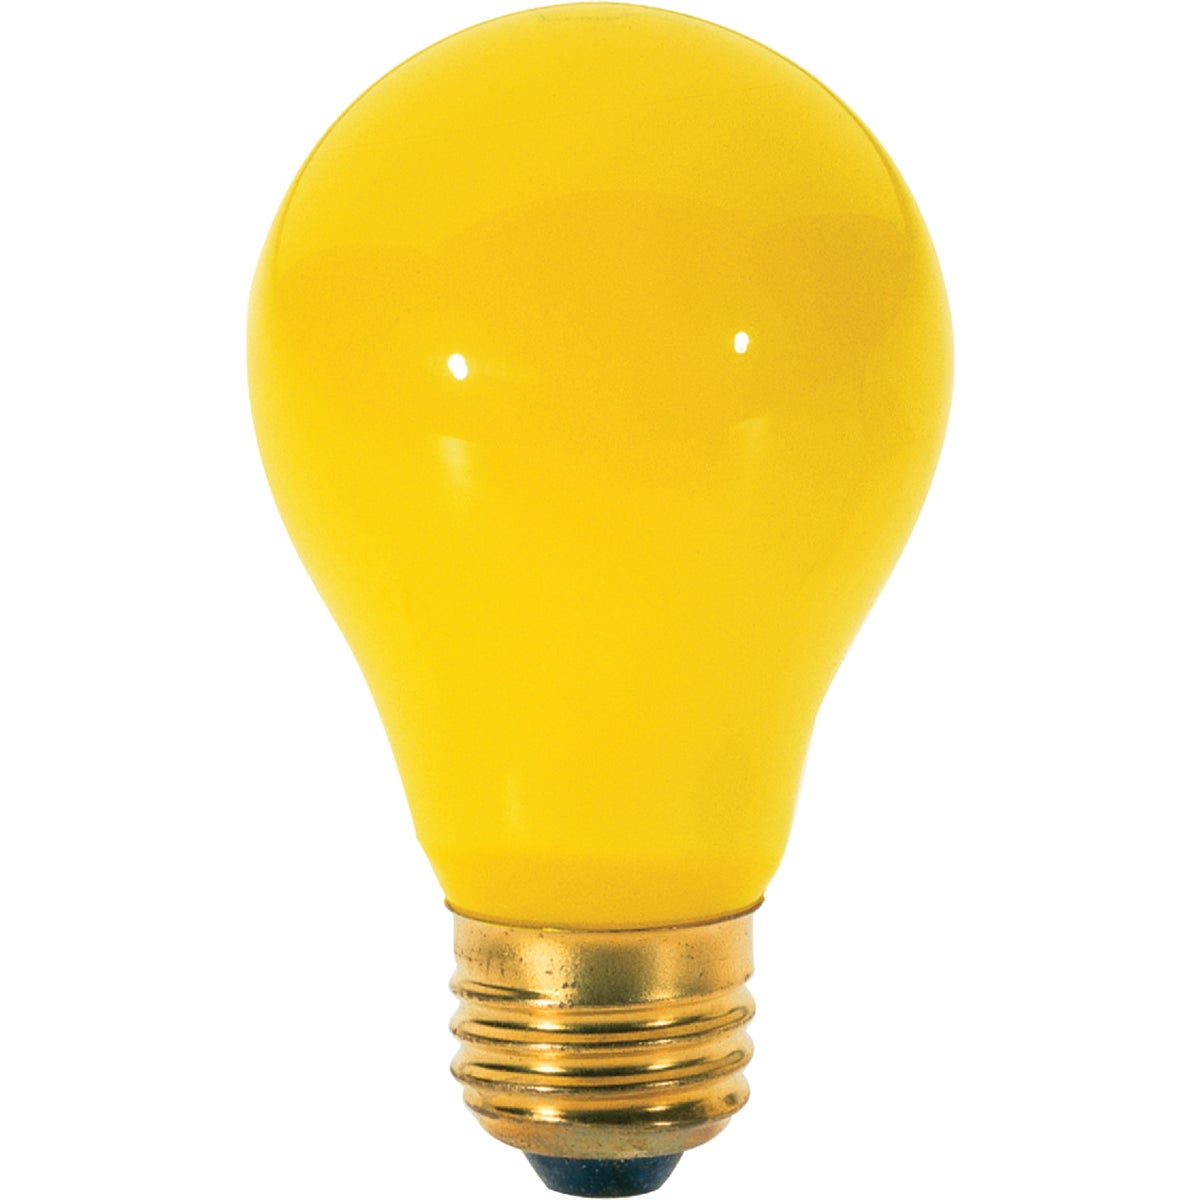 60W 2PK YEL BUG BULB - 97495 60A/Y by G E Lighting